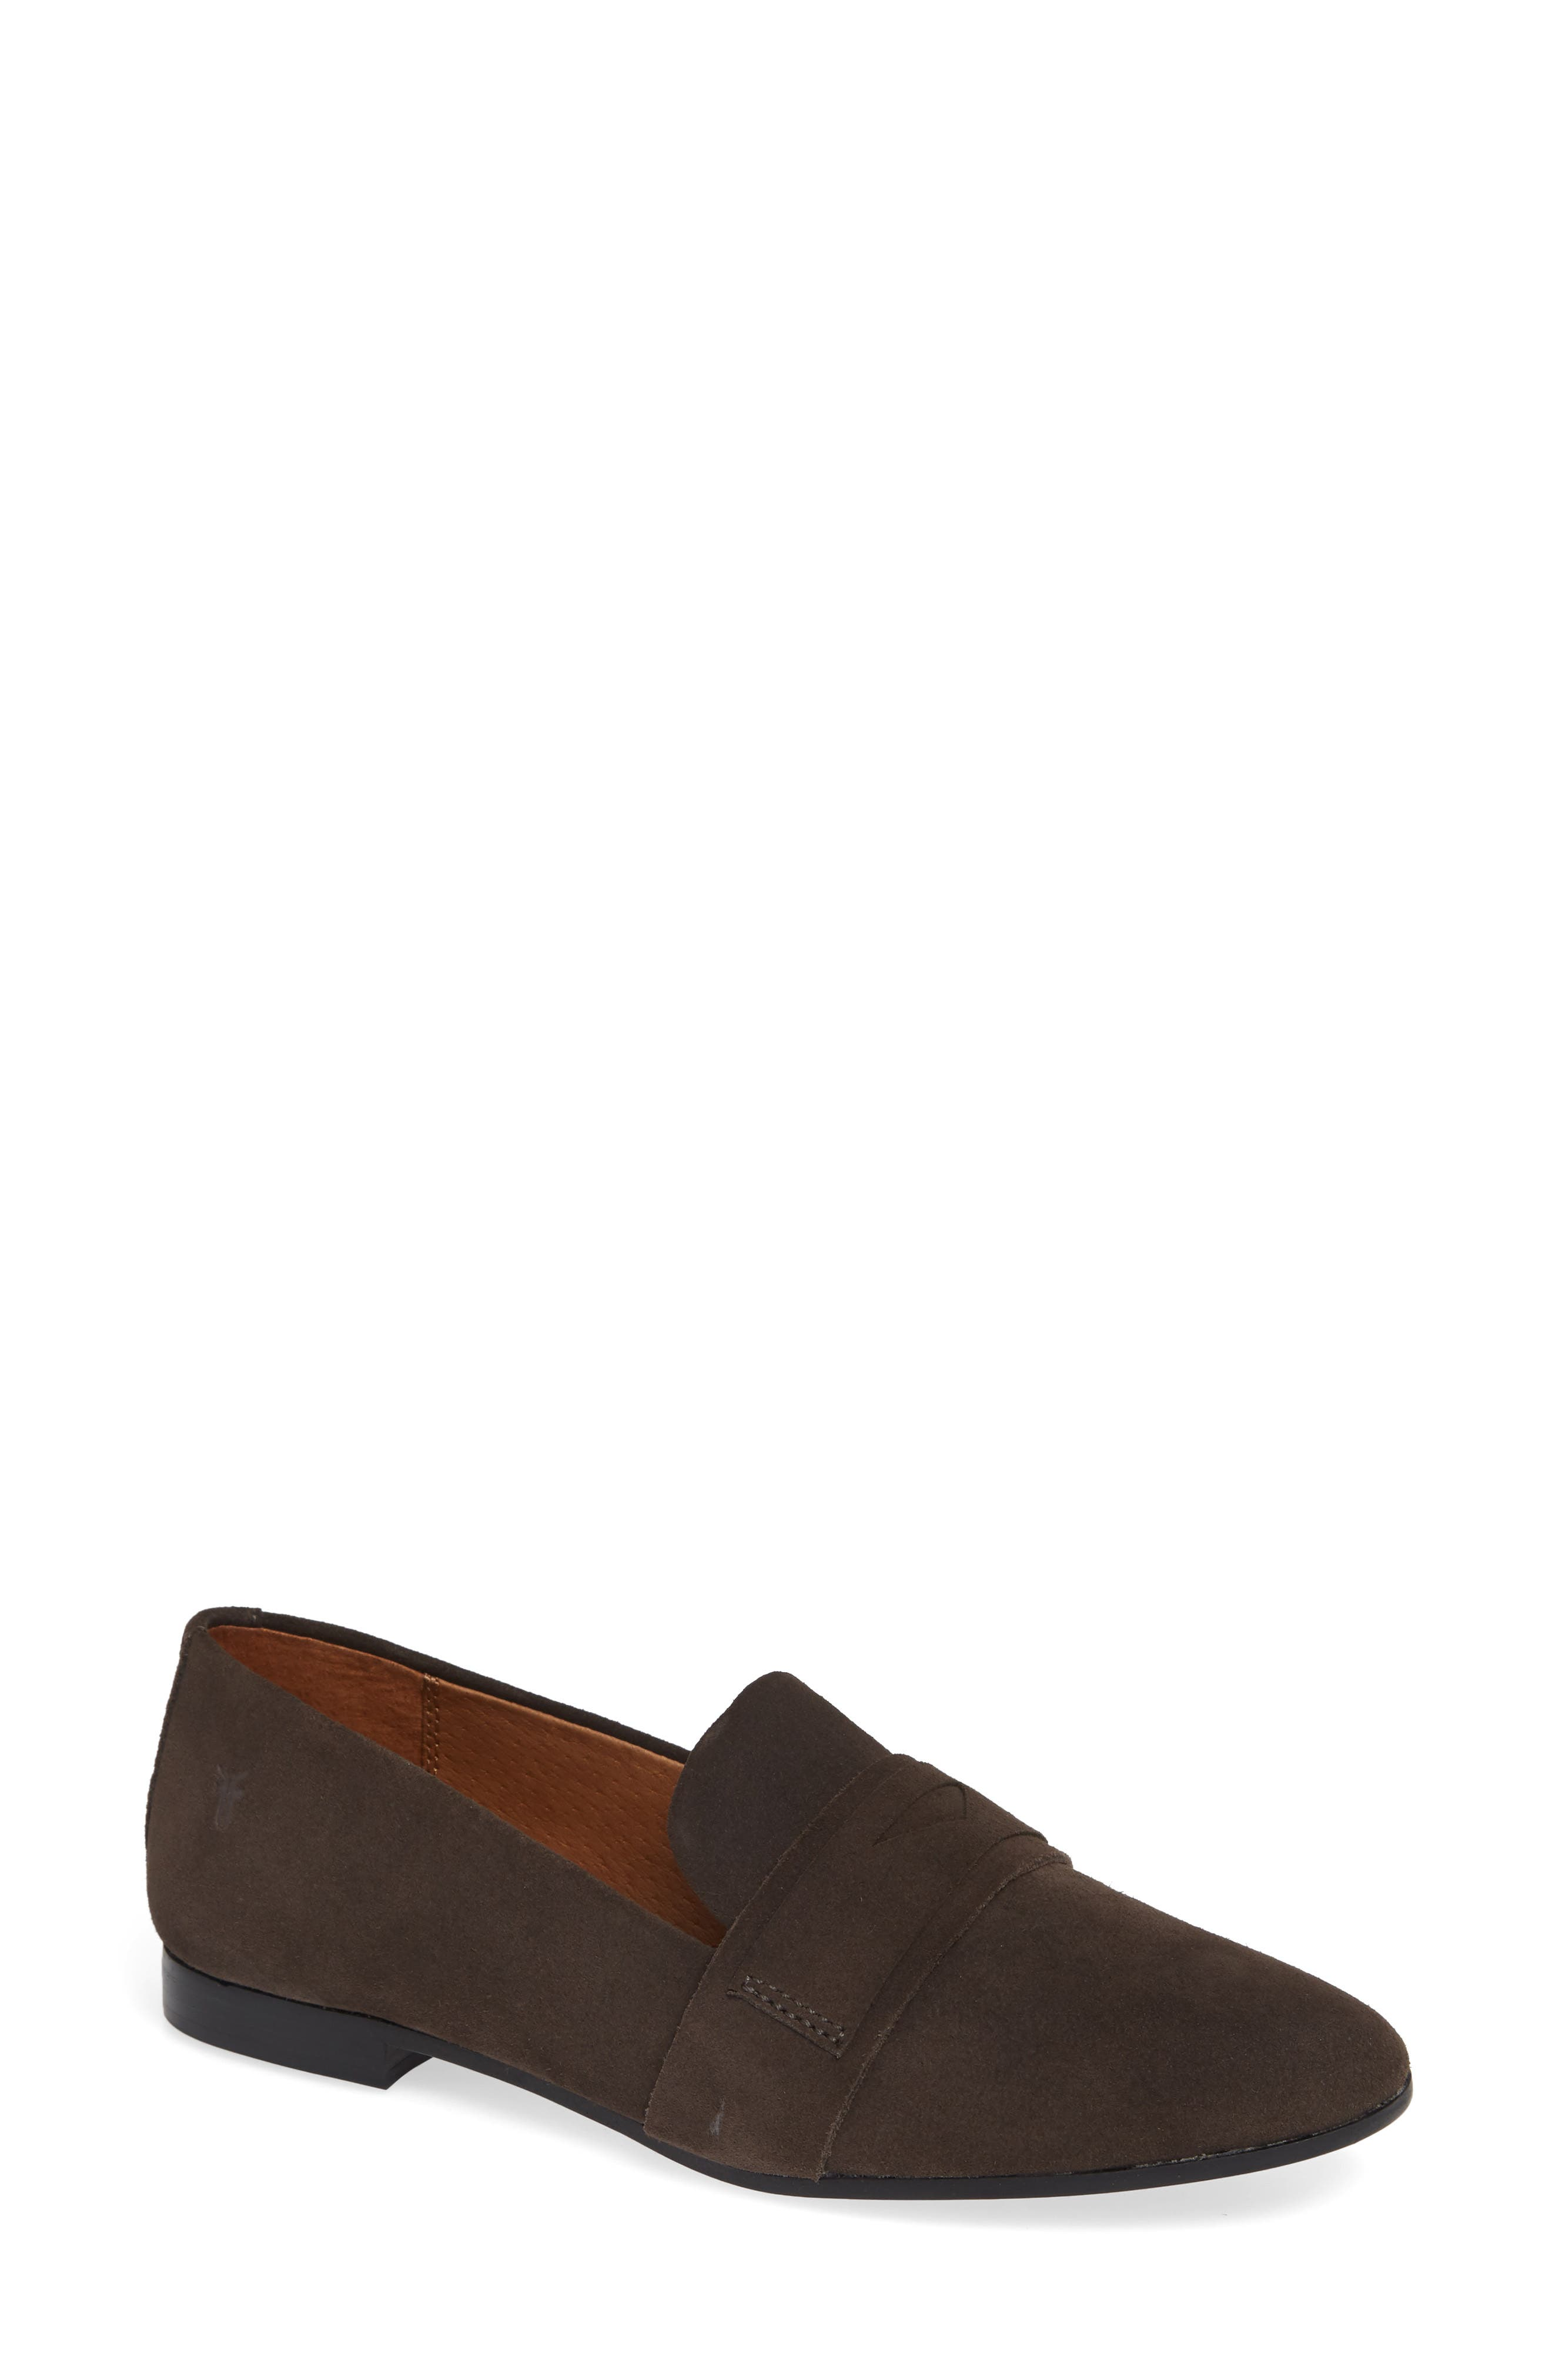 Terri Penny Loafer,                         Main,                         color, CHARCOAL SUEDE